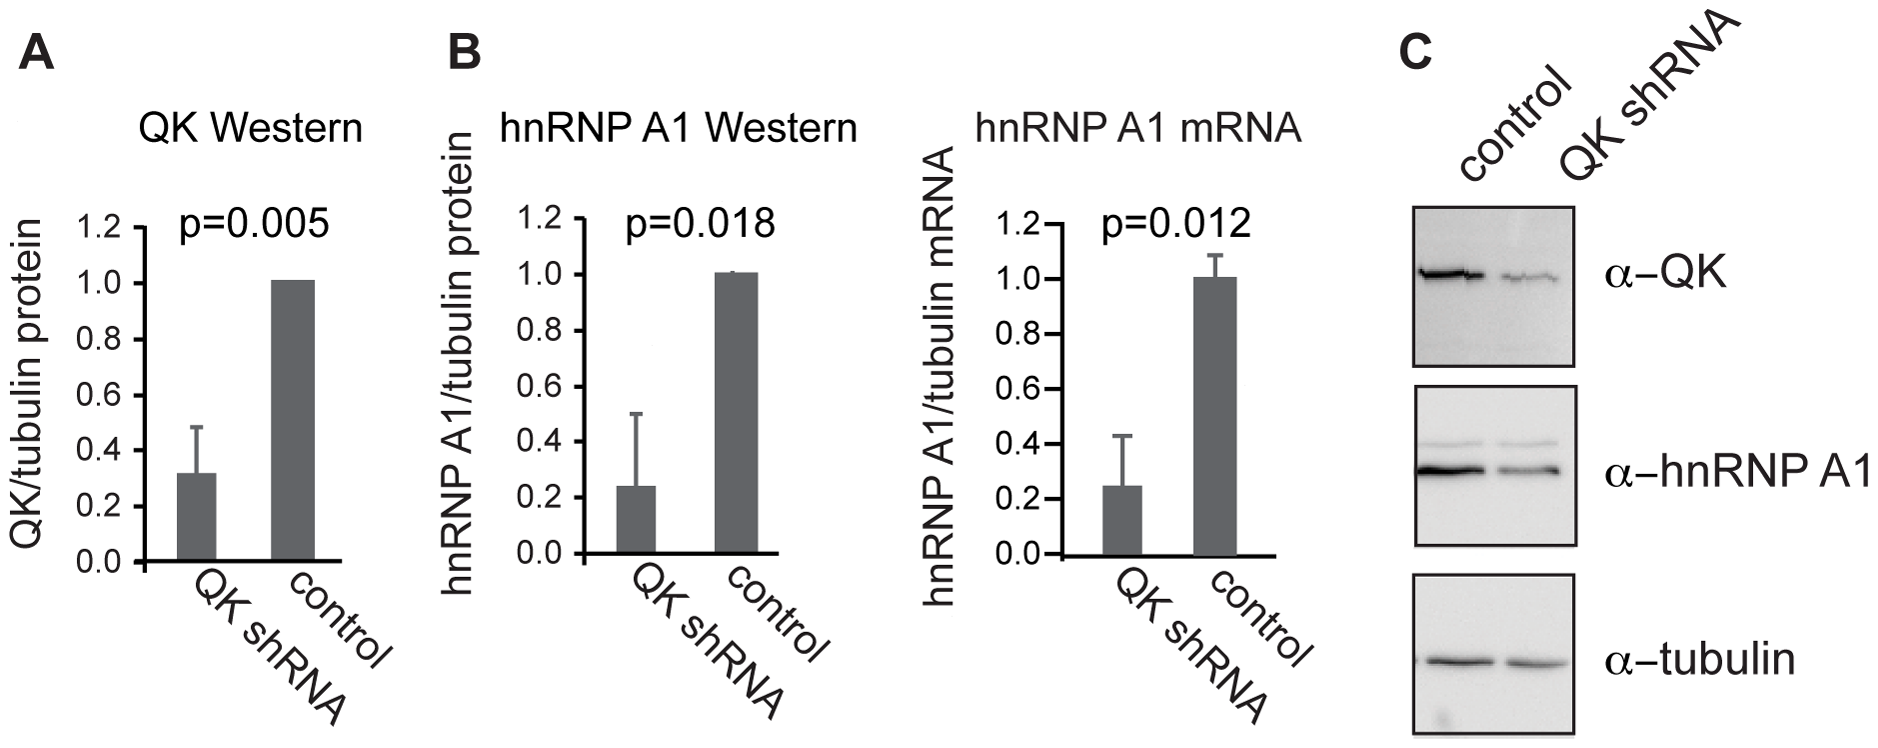 QK regulates expression of endogenous <i>Hnrnpa1</i>.